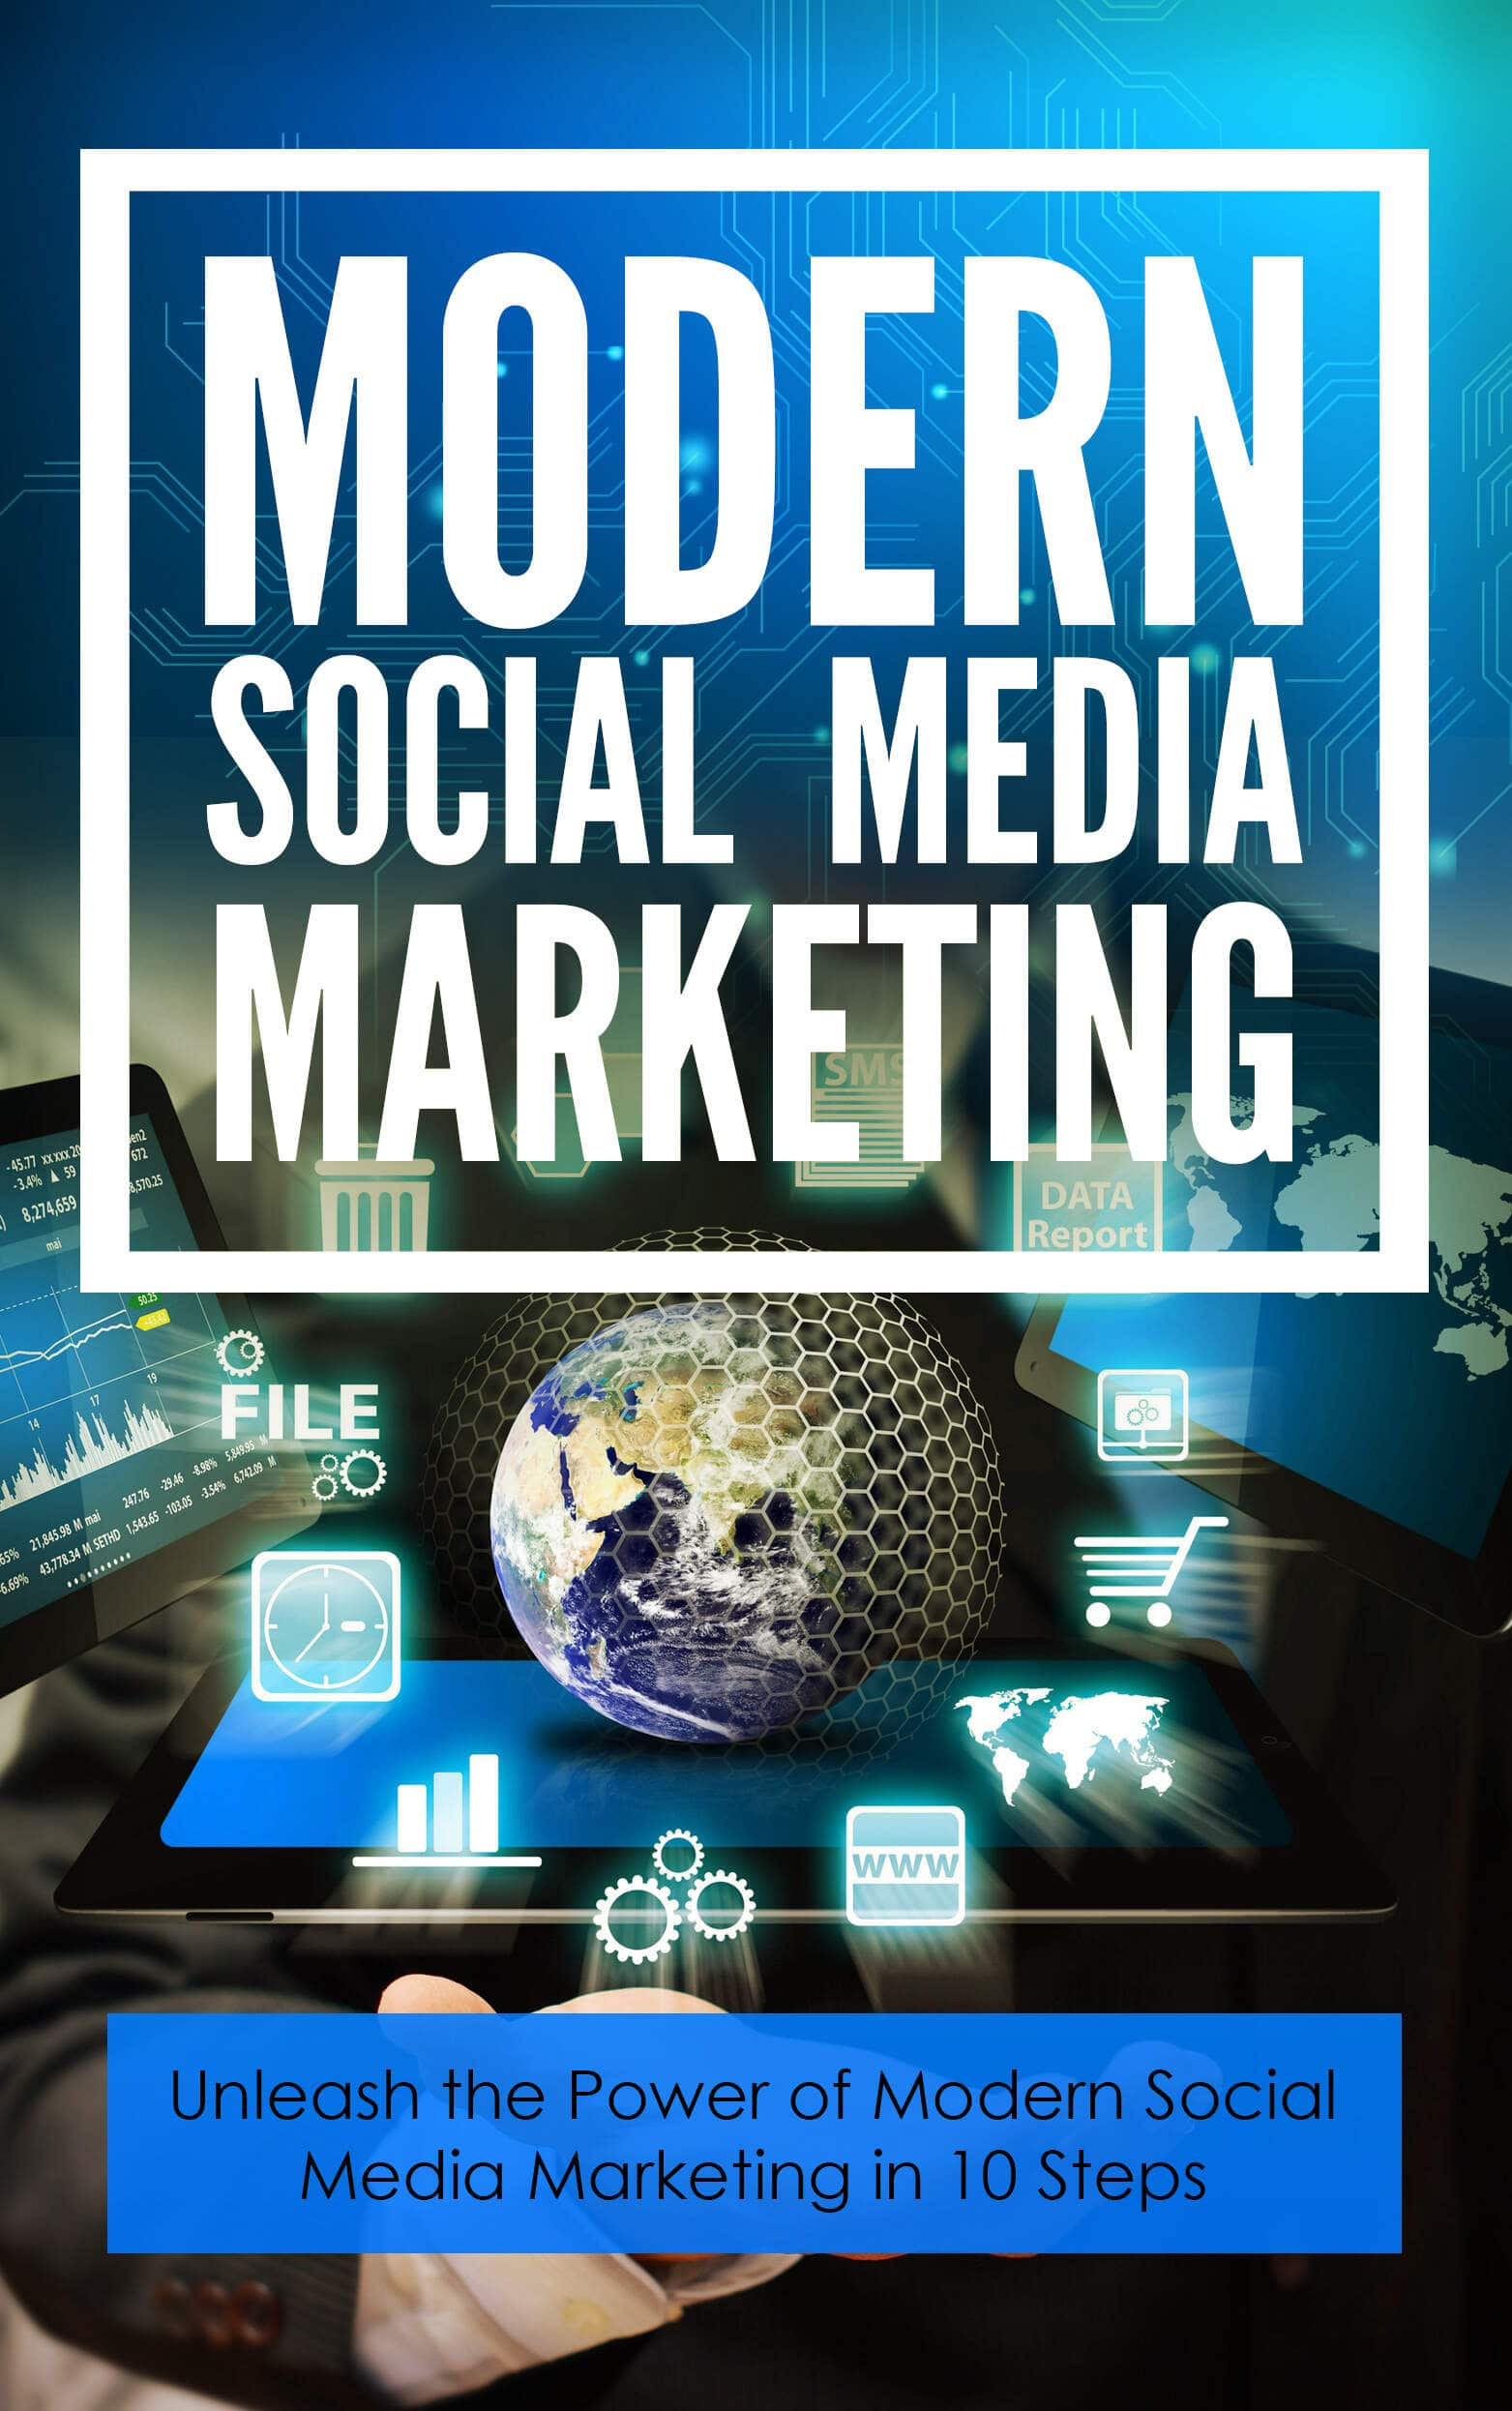 Modern Social Media Marketing (Unleash The Power Of Modern Social Media Marketing In 10 Steps) Ebook's Ebook Image